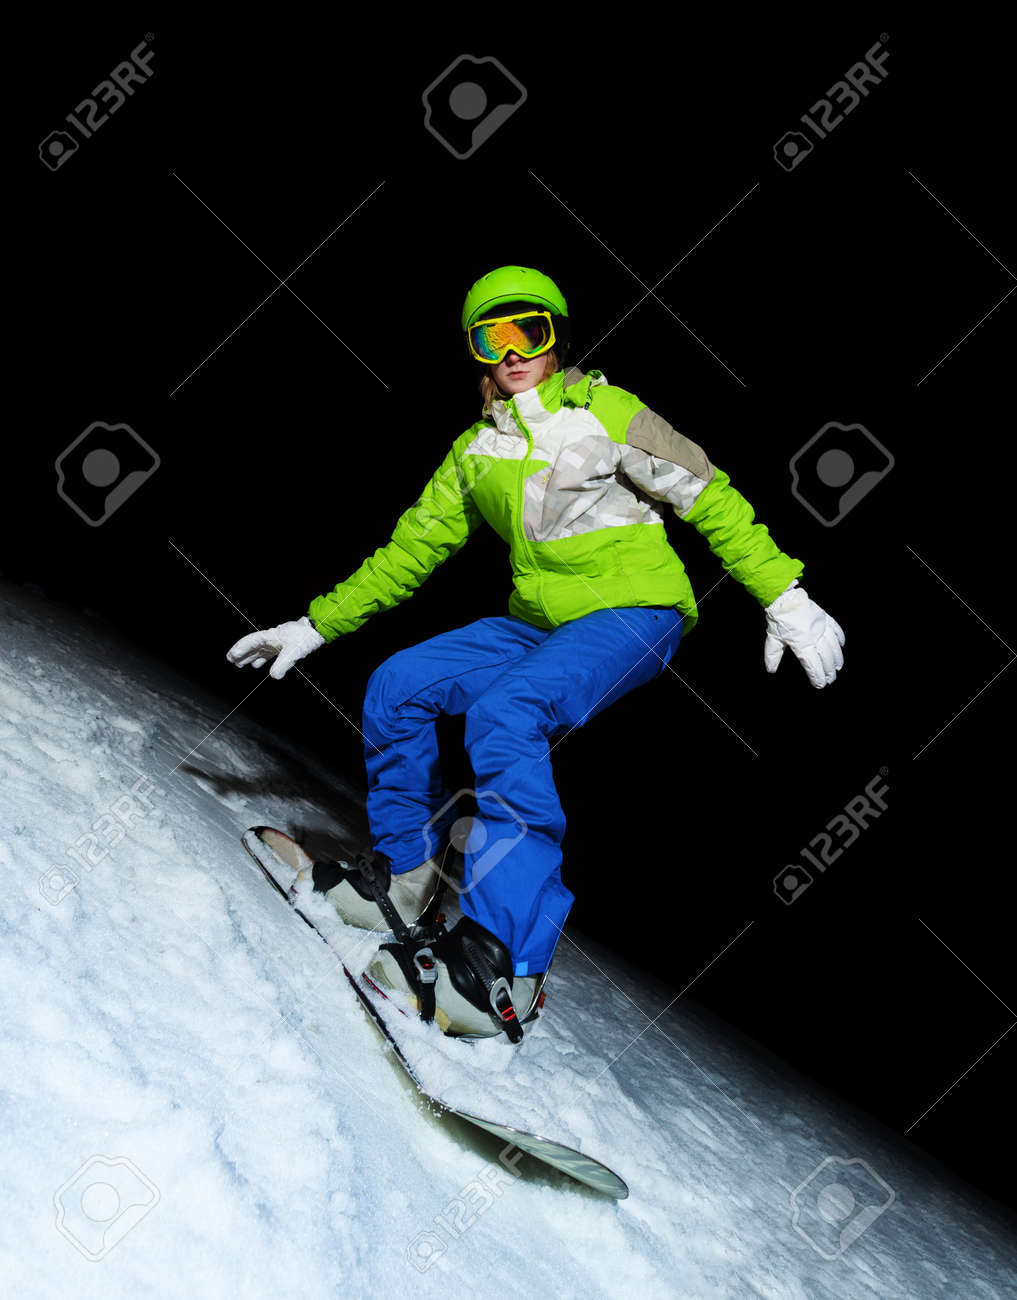 aa0d438dffac Portrait of young woman standing on snowboard wearing ski mask at night  Stock Photo - 28927532